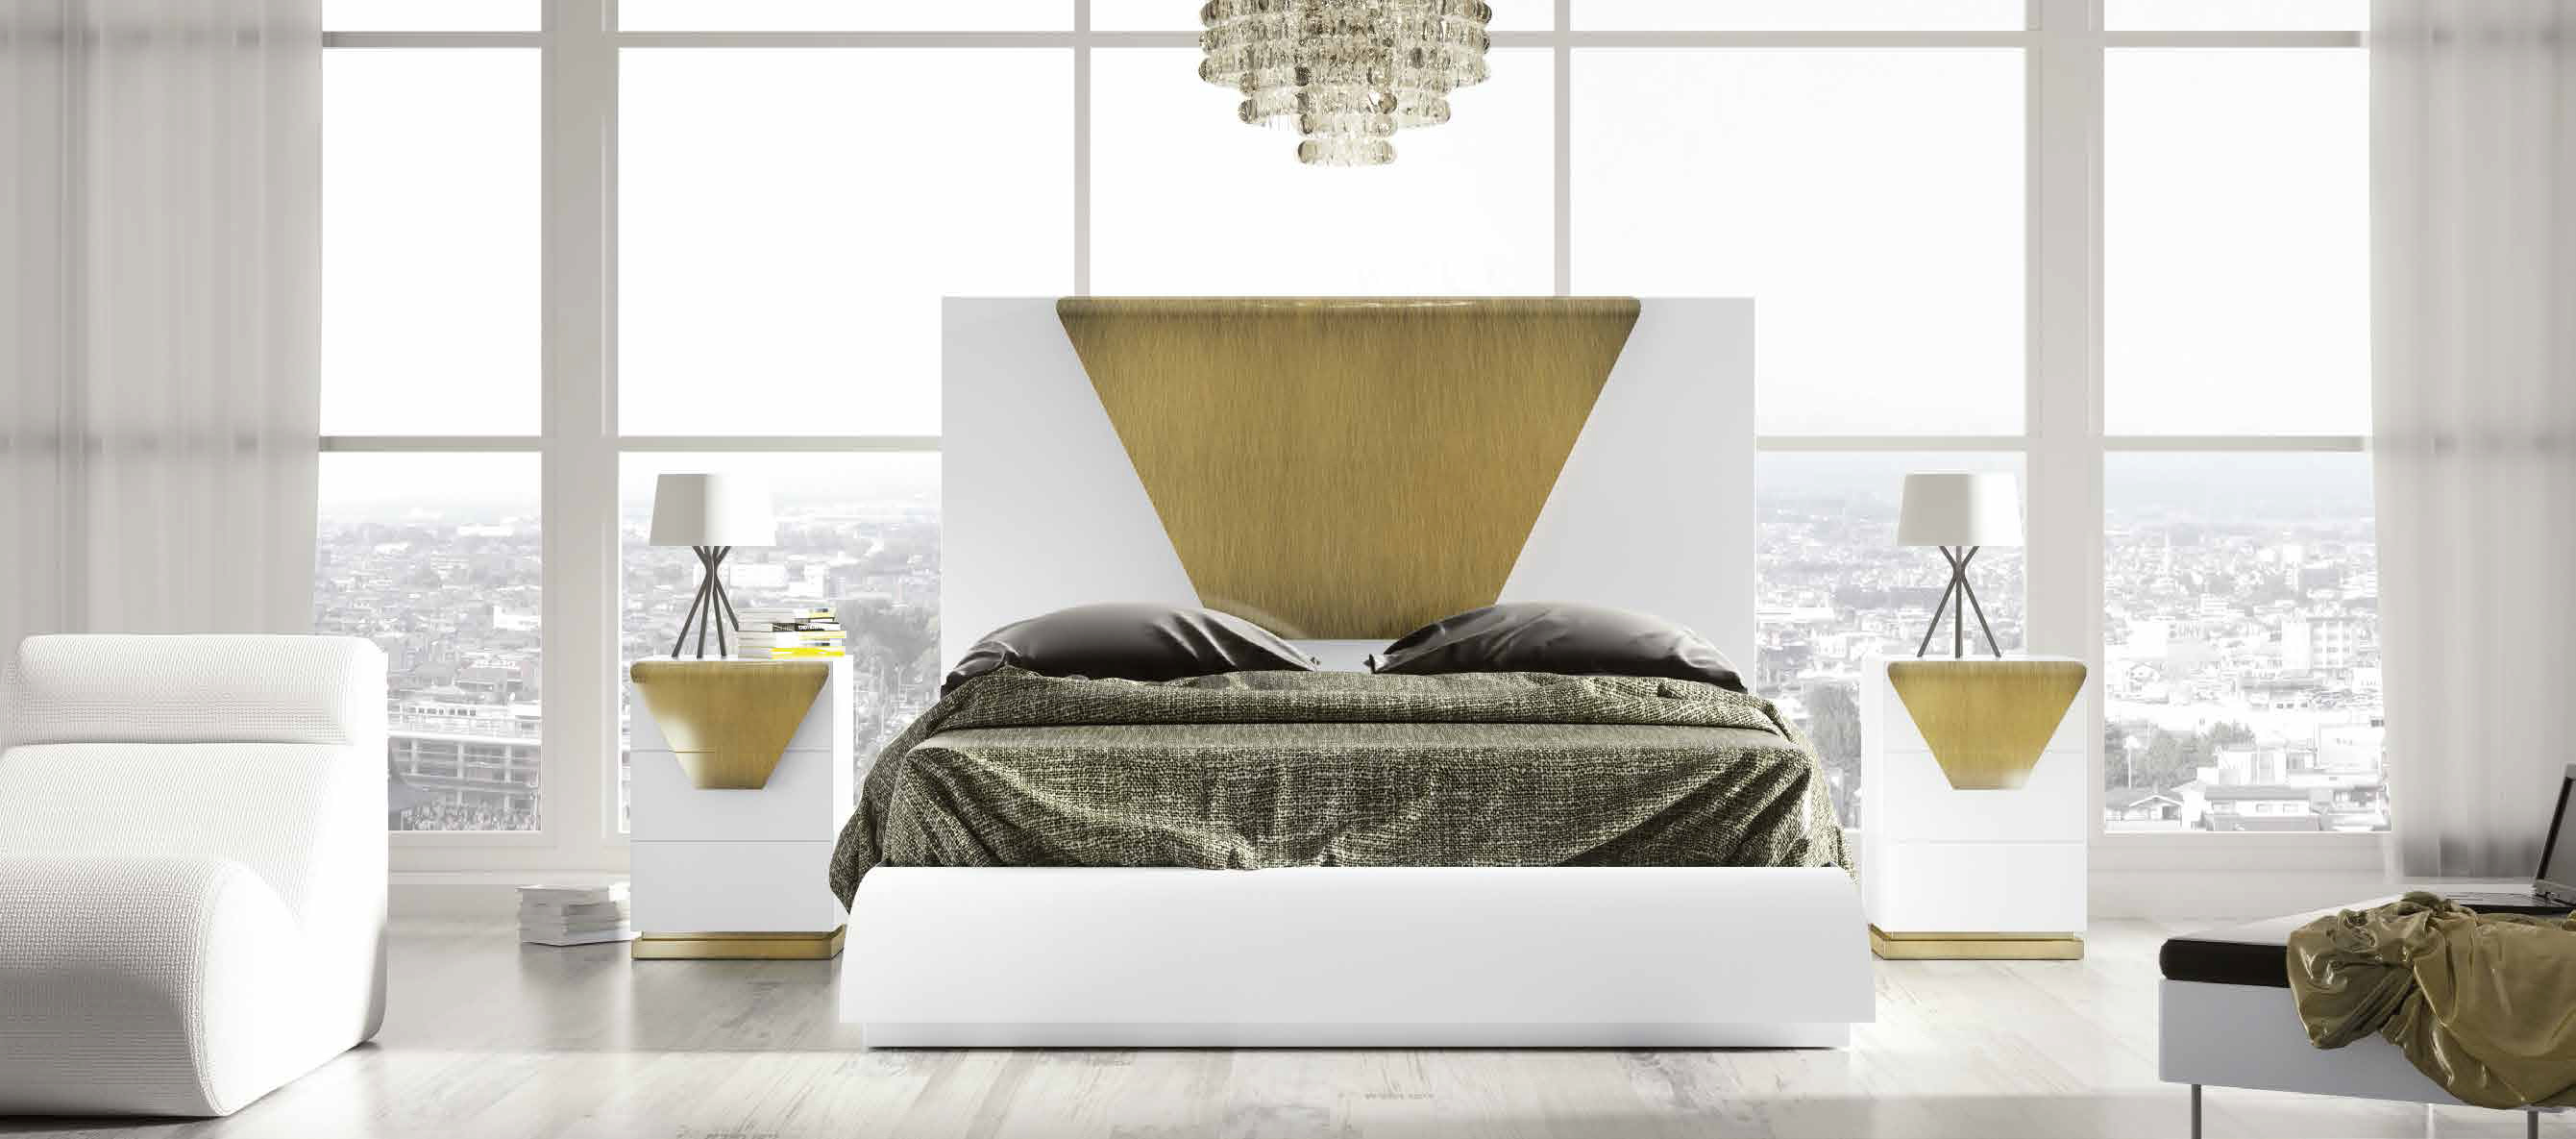 Brands Franco Furniture Bedrooms vol1, Spain DOR 88